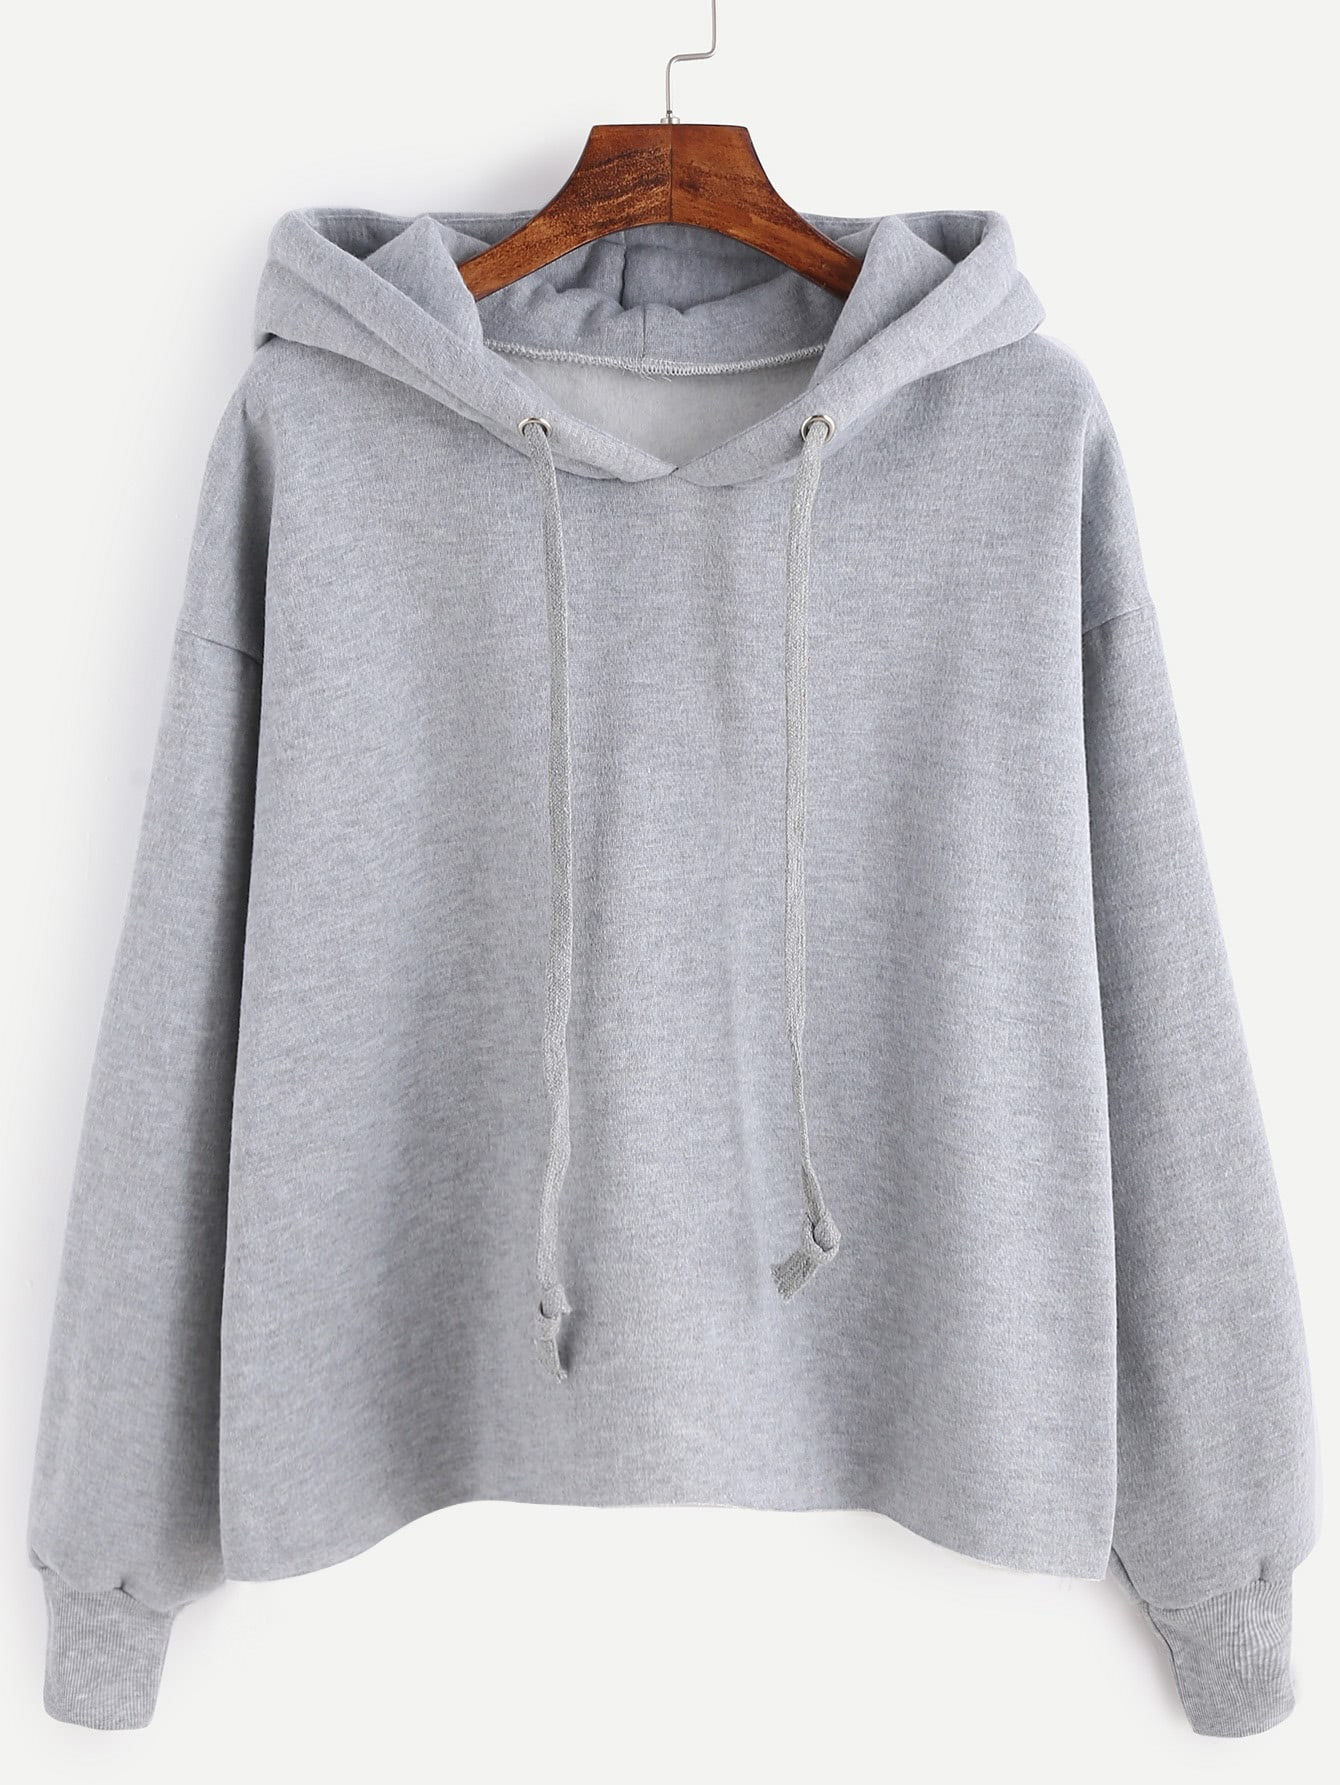 Grey Drawstring Hooded Sweatshirt sweatshirt161021105